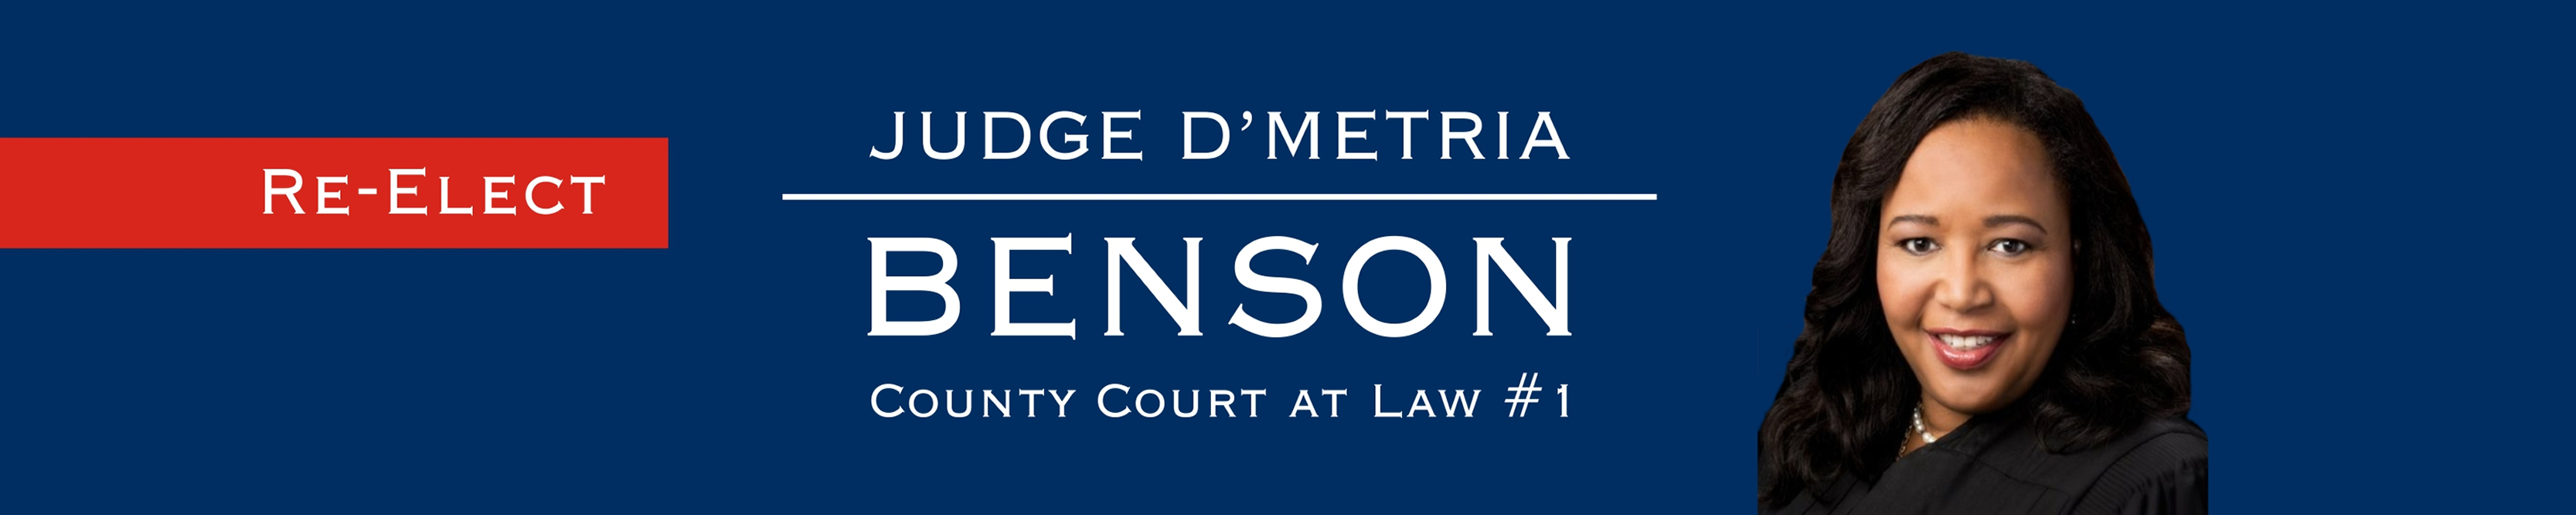 ReElect Judge D'Metria Benson